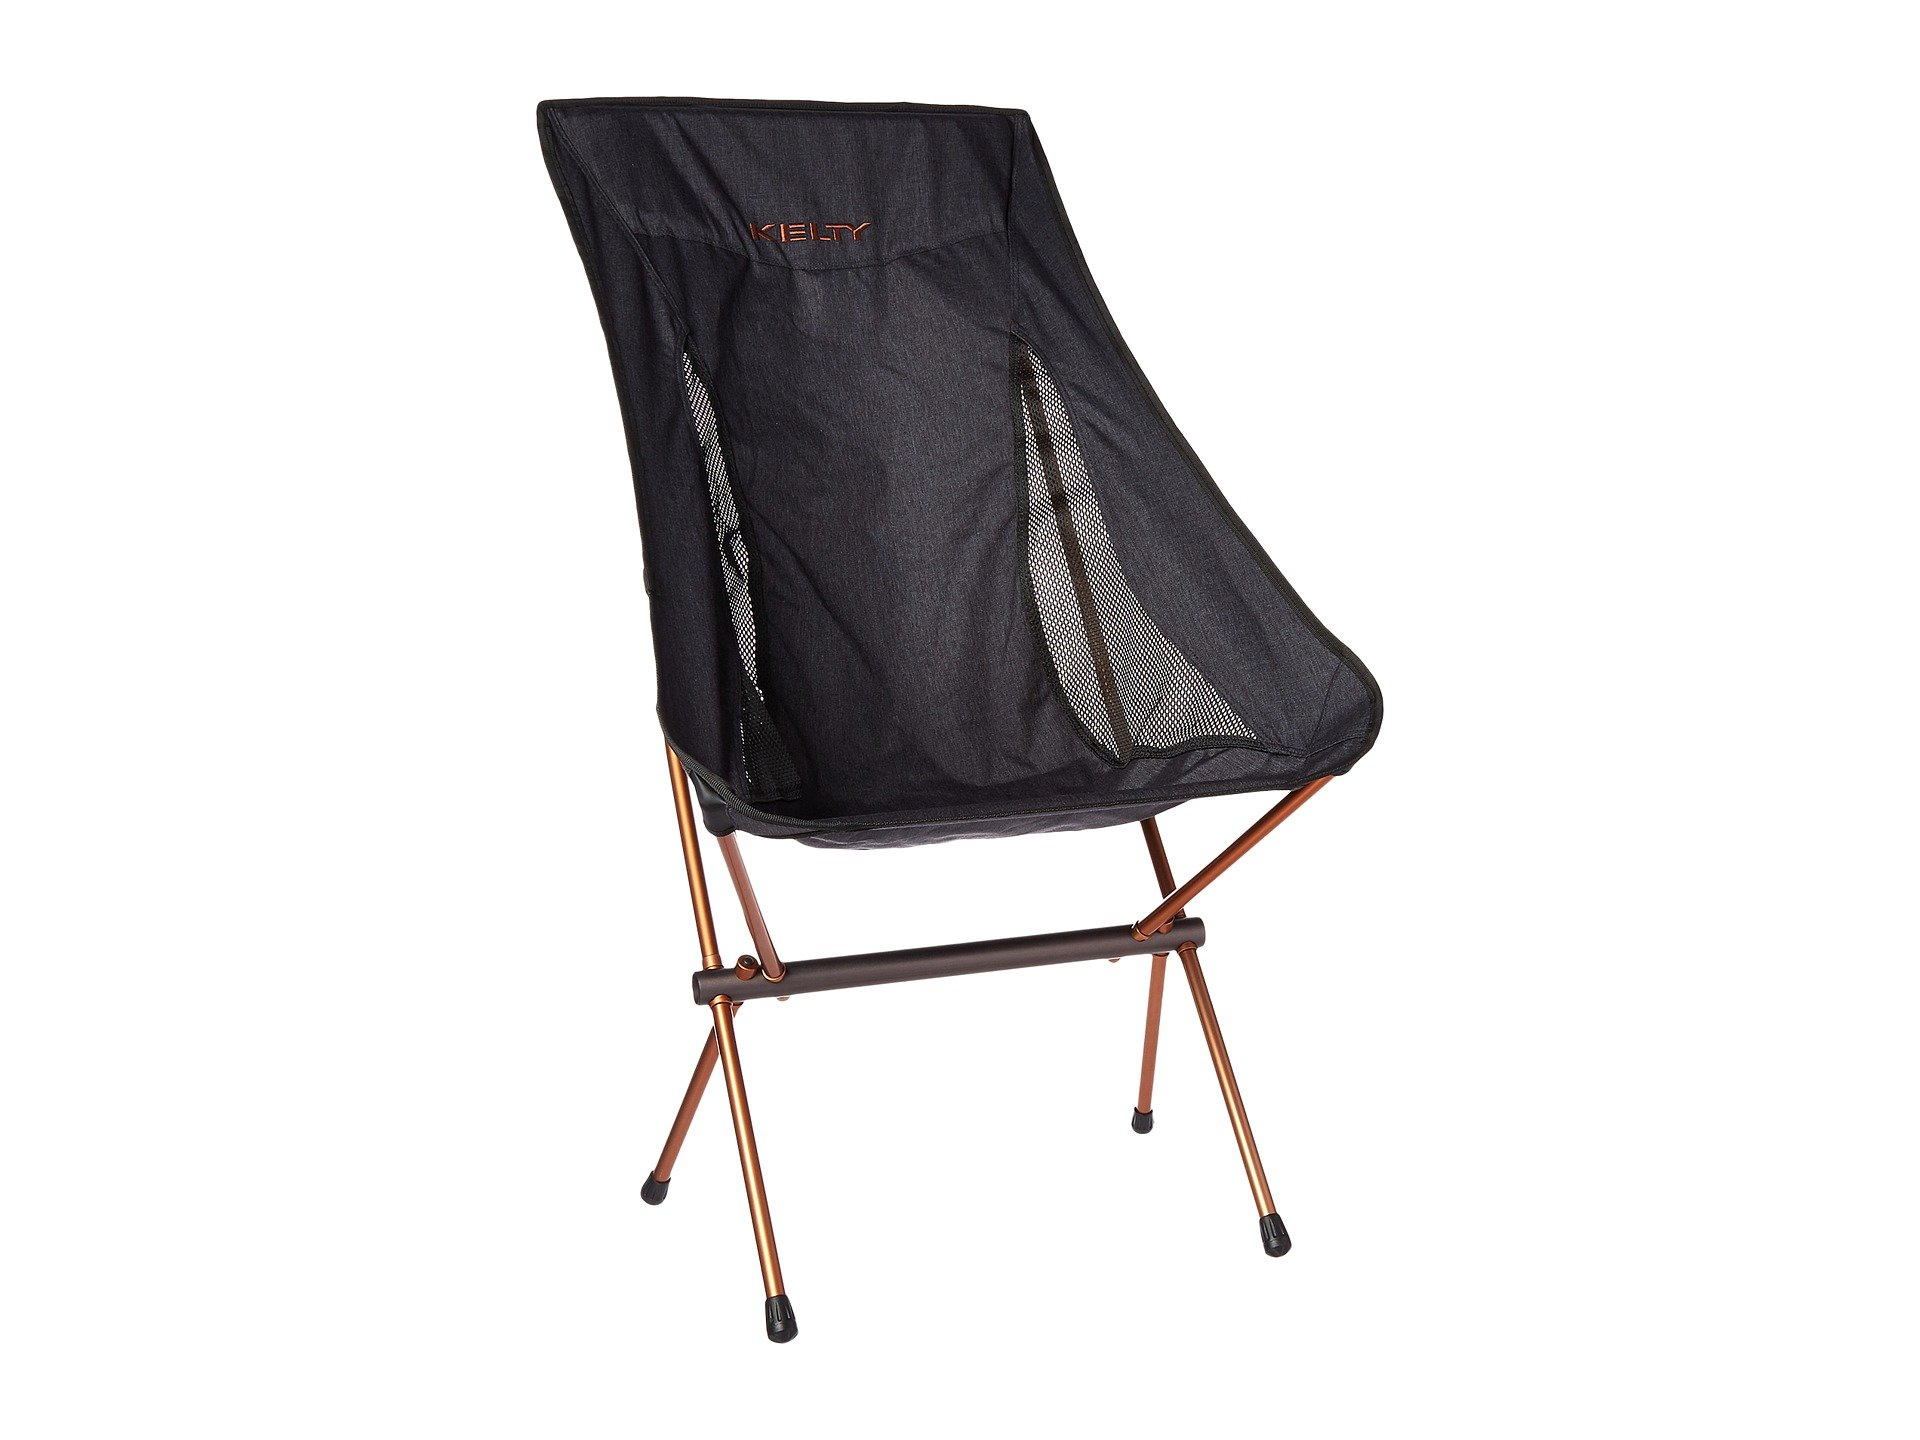 Gallery Of Kelty Loveseat Camping Chair